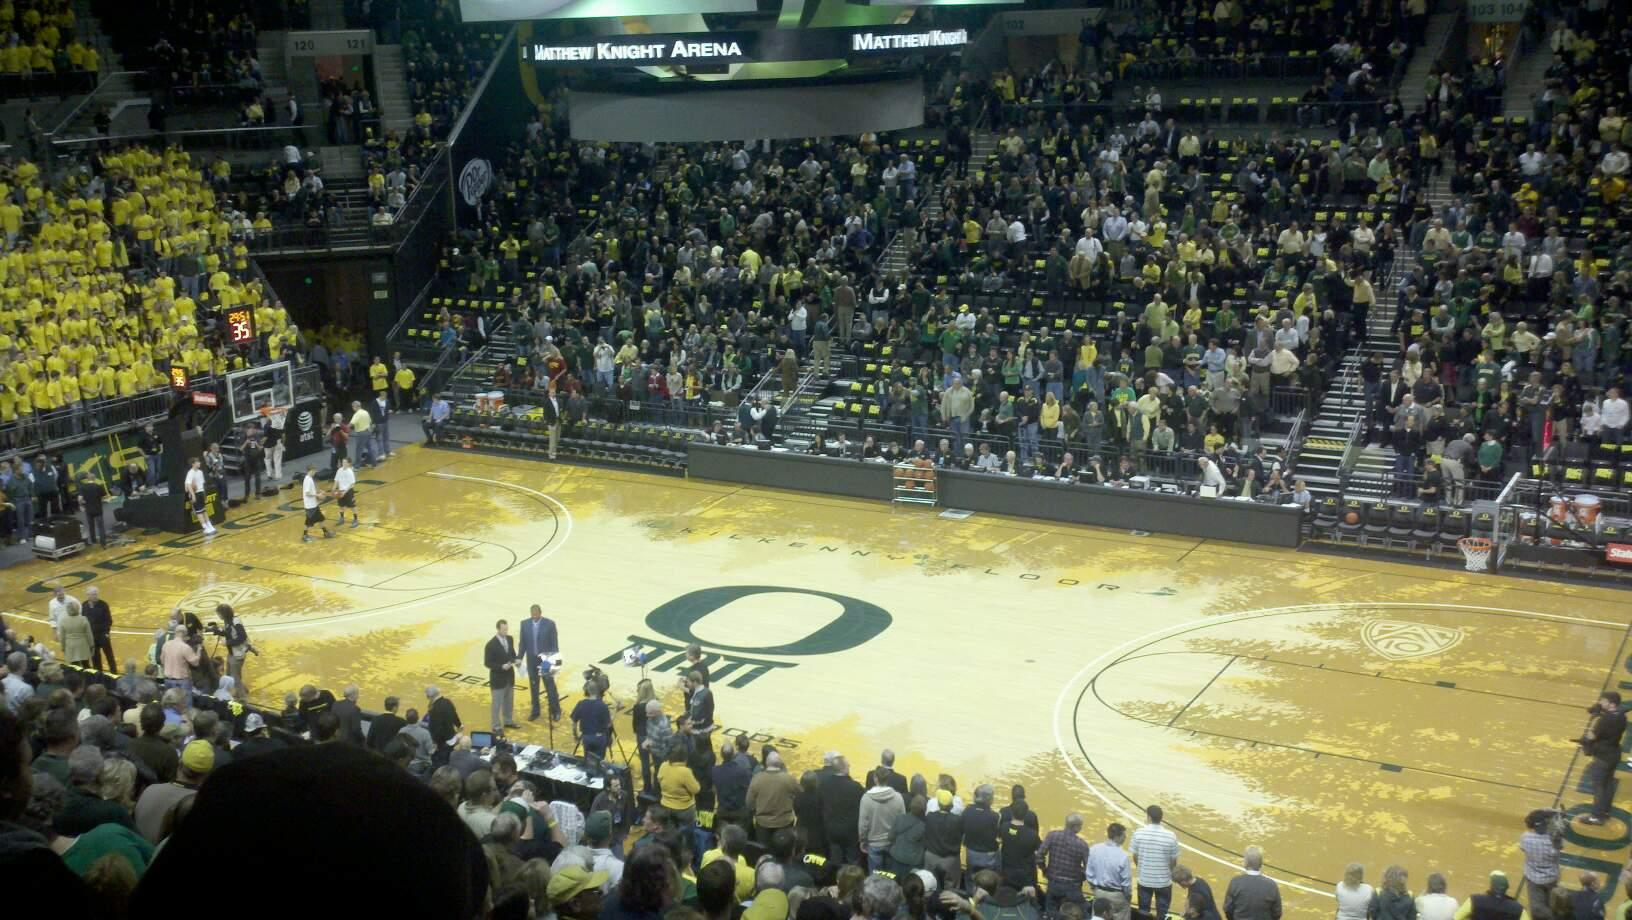 Matthew Knight Arena Section 211